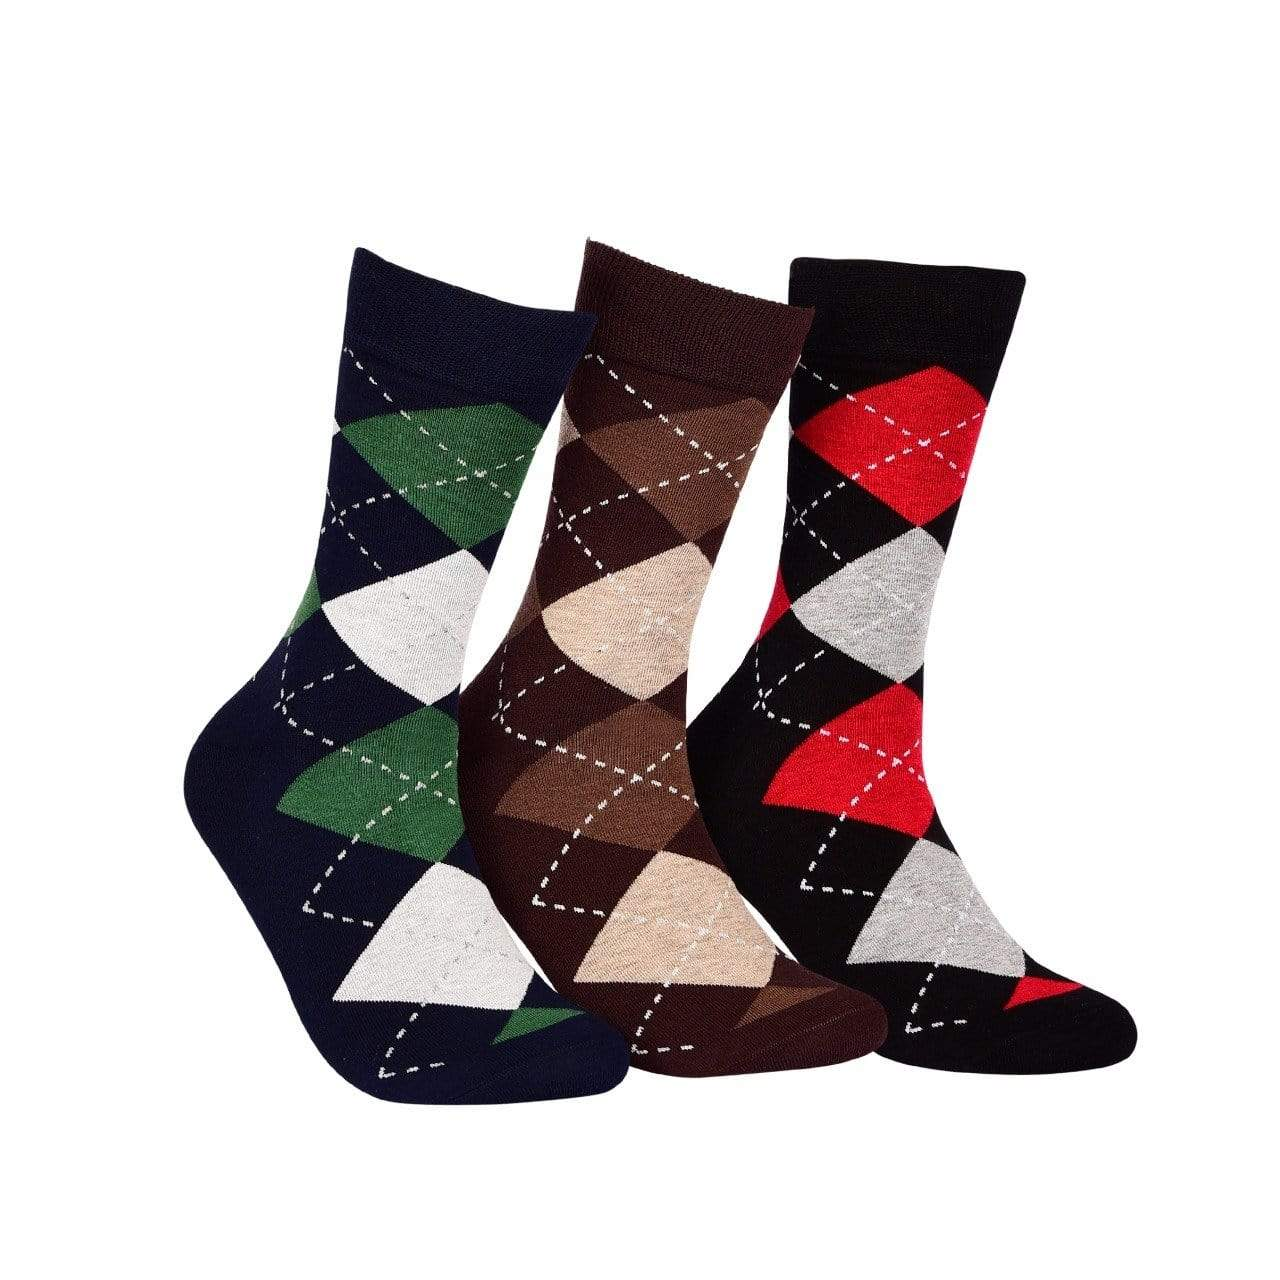 Business Crew Socks - PACK OF 3 (Navy, Black, Brown) - Tale Of Socks